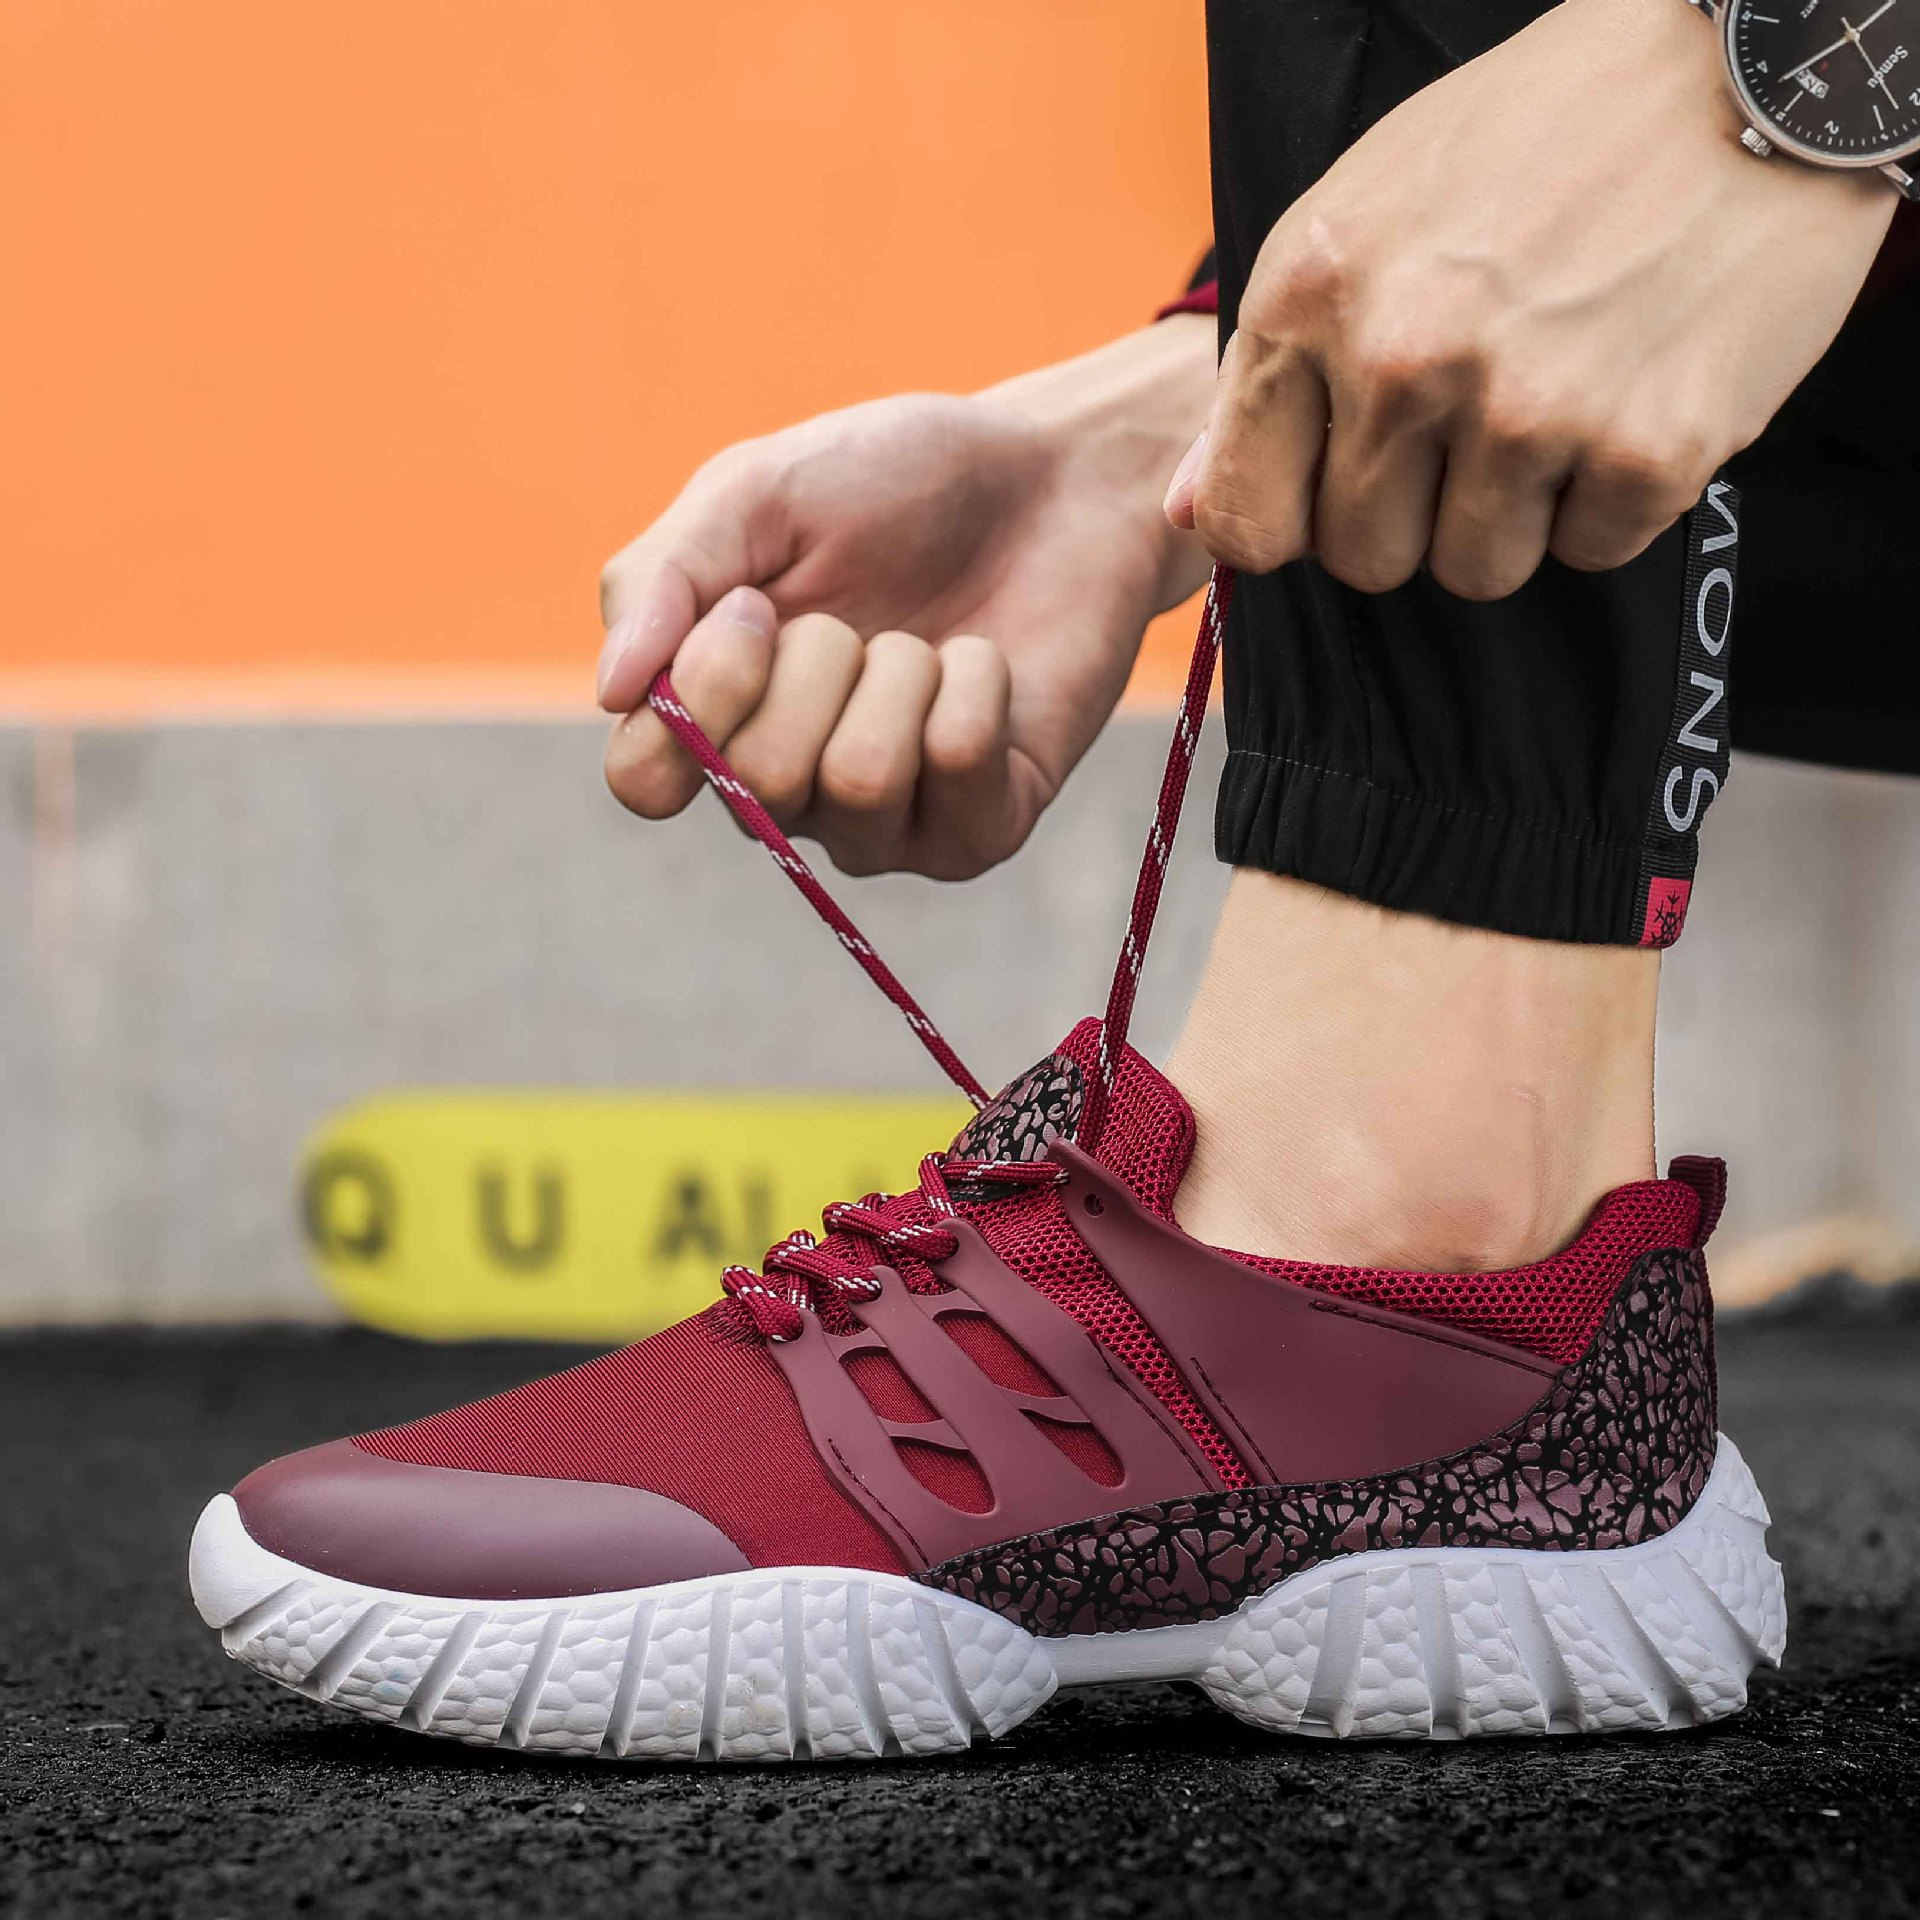 Hot 2018 Trend Running Shoes For Men Sneakers Breathable Mesh Shoes Laces Sport Shoes Running Shoes Male Plus Size 39-46